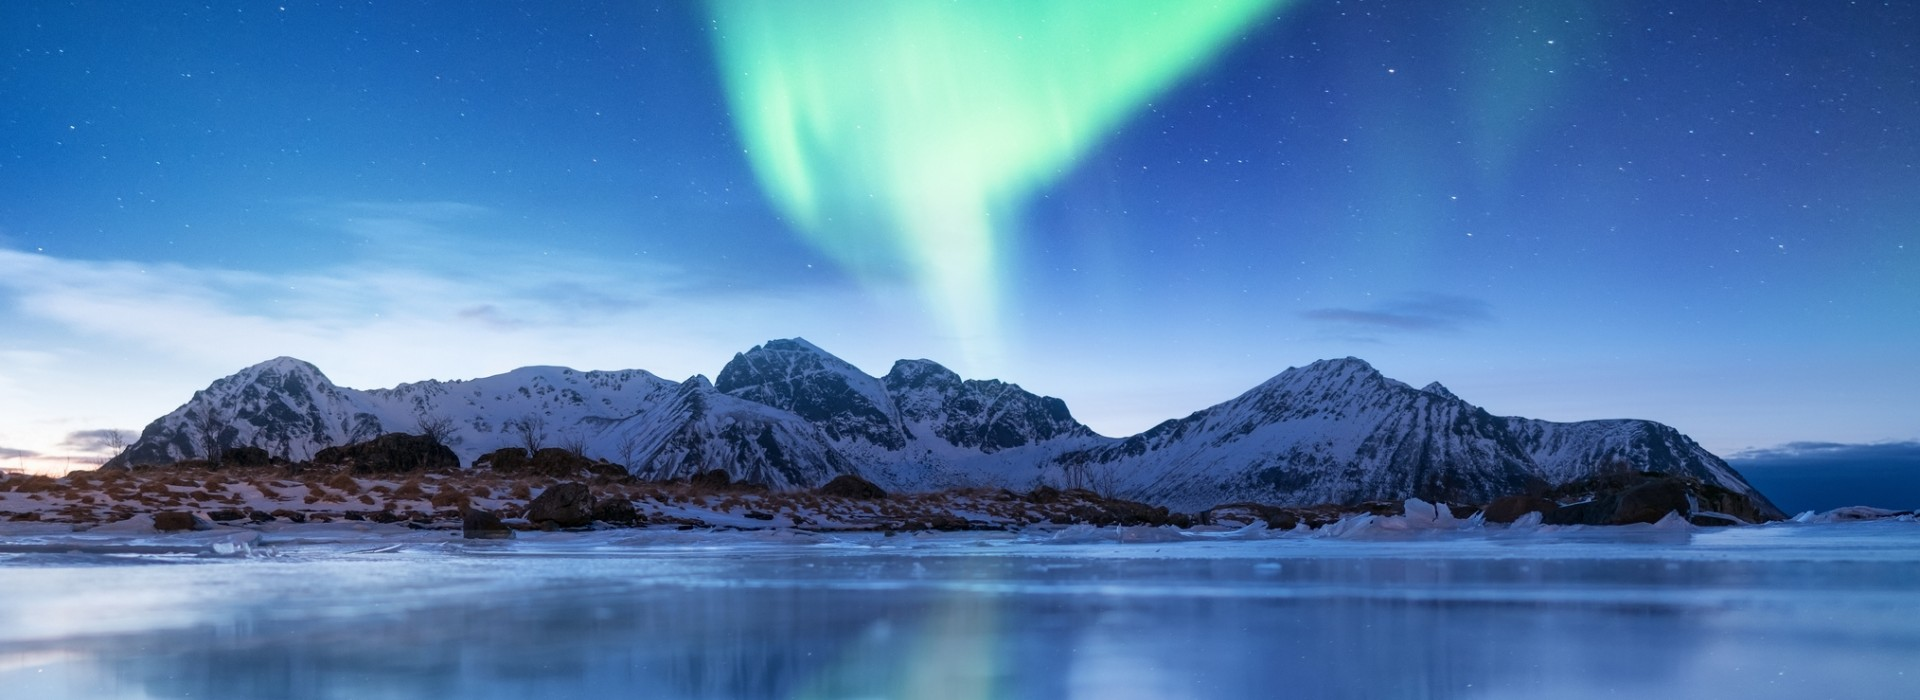 10 Best Northern lights tours in Scandinavia – Compare Prices and Reviews |  Bookmundi